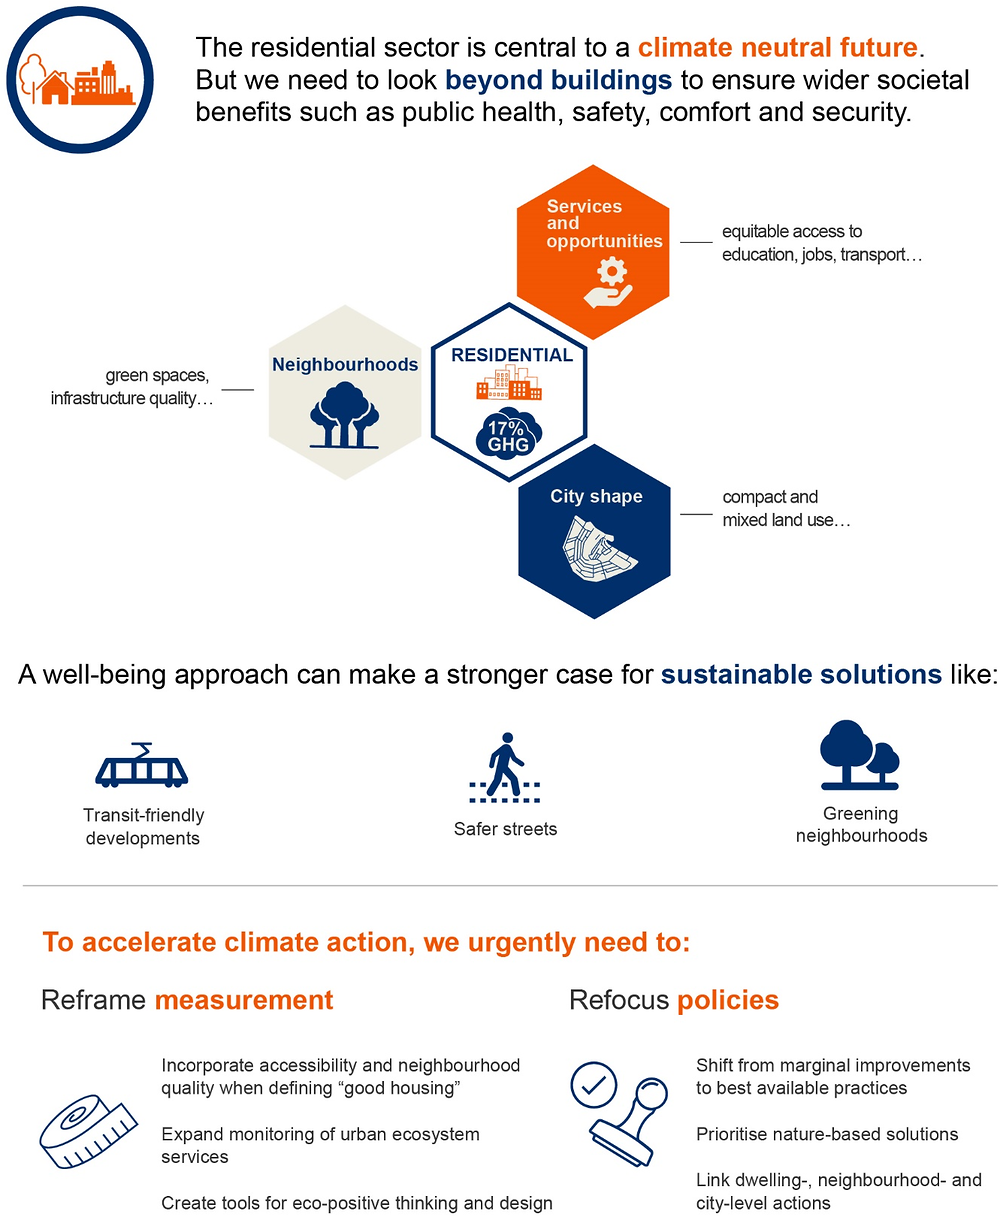 Infographic 4.1. Building sustainable dwellings, neighbourhoods and communities